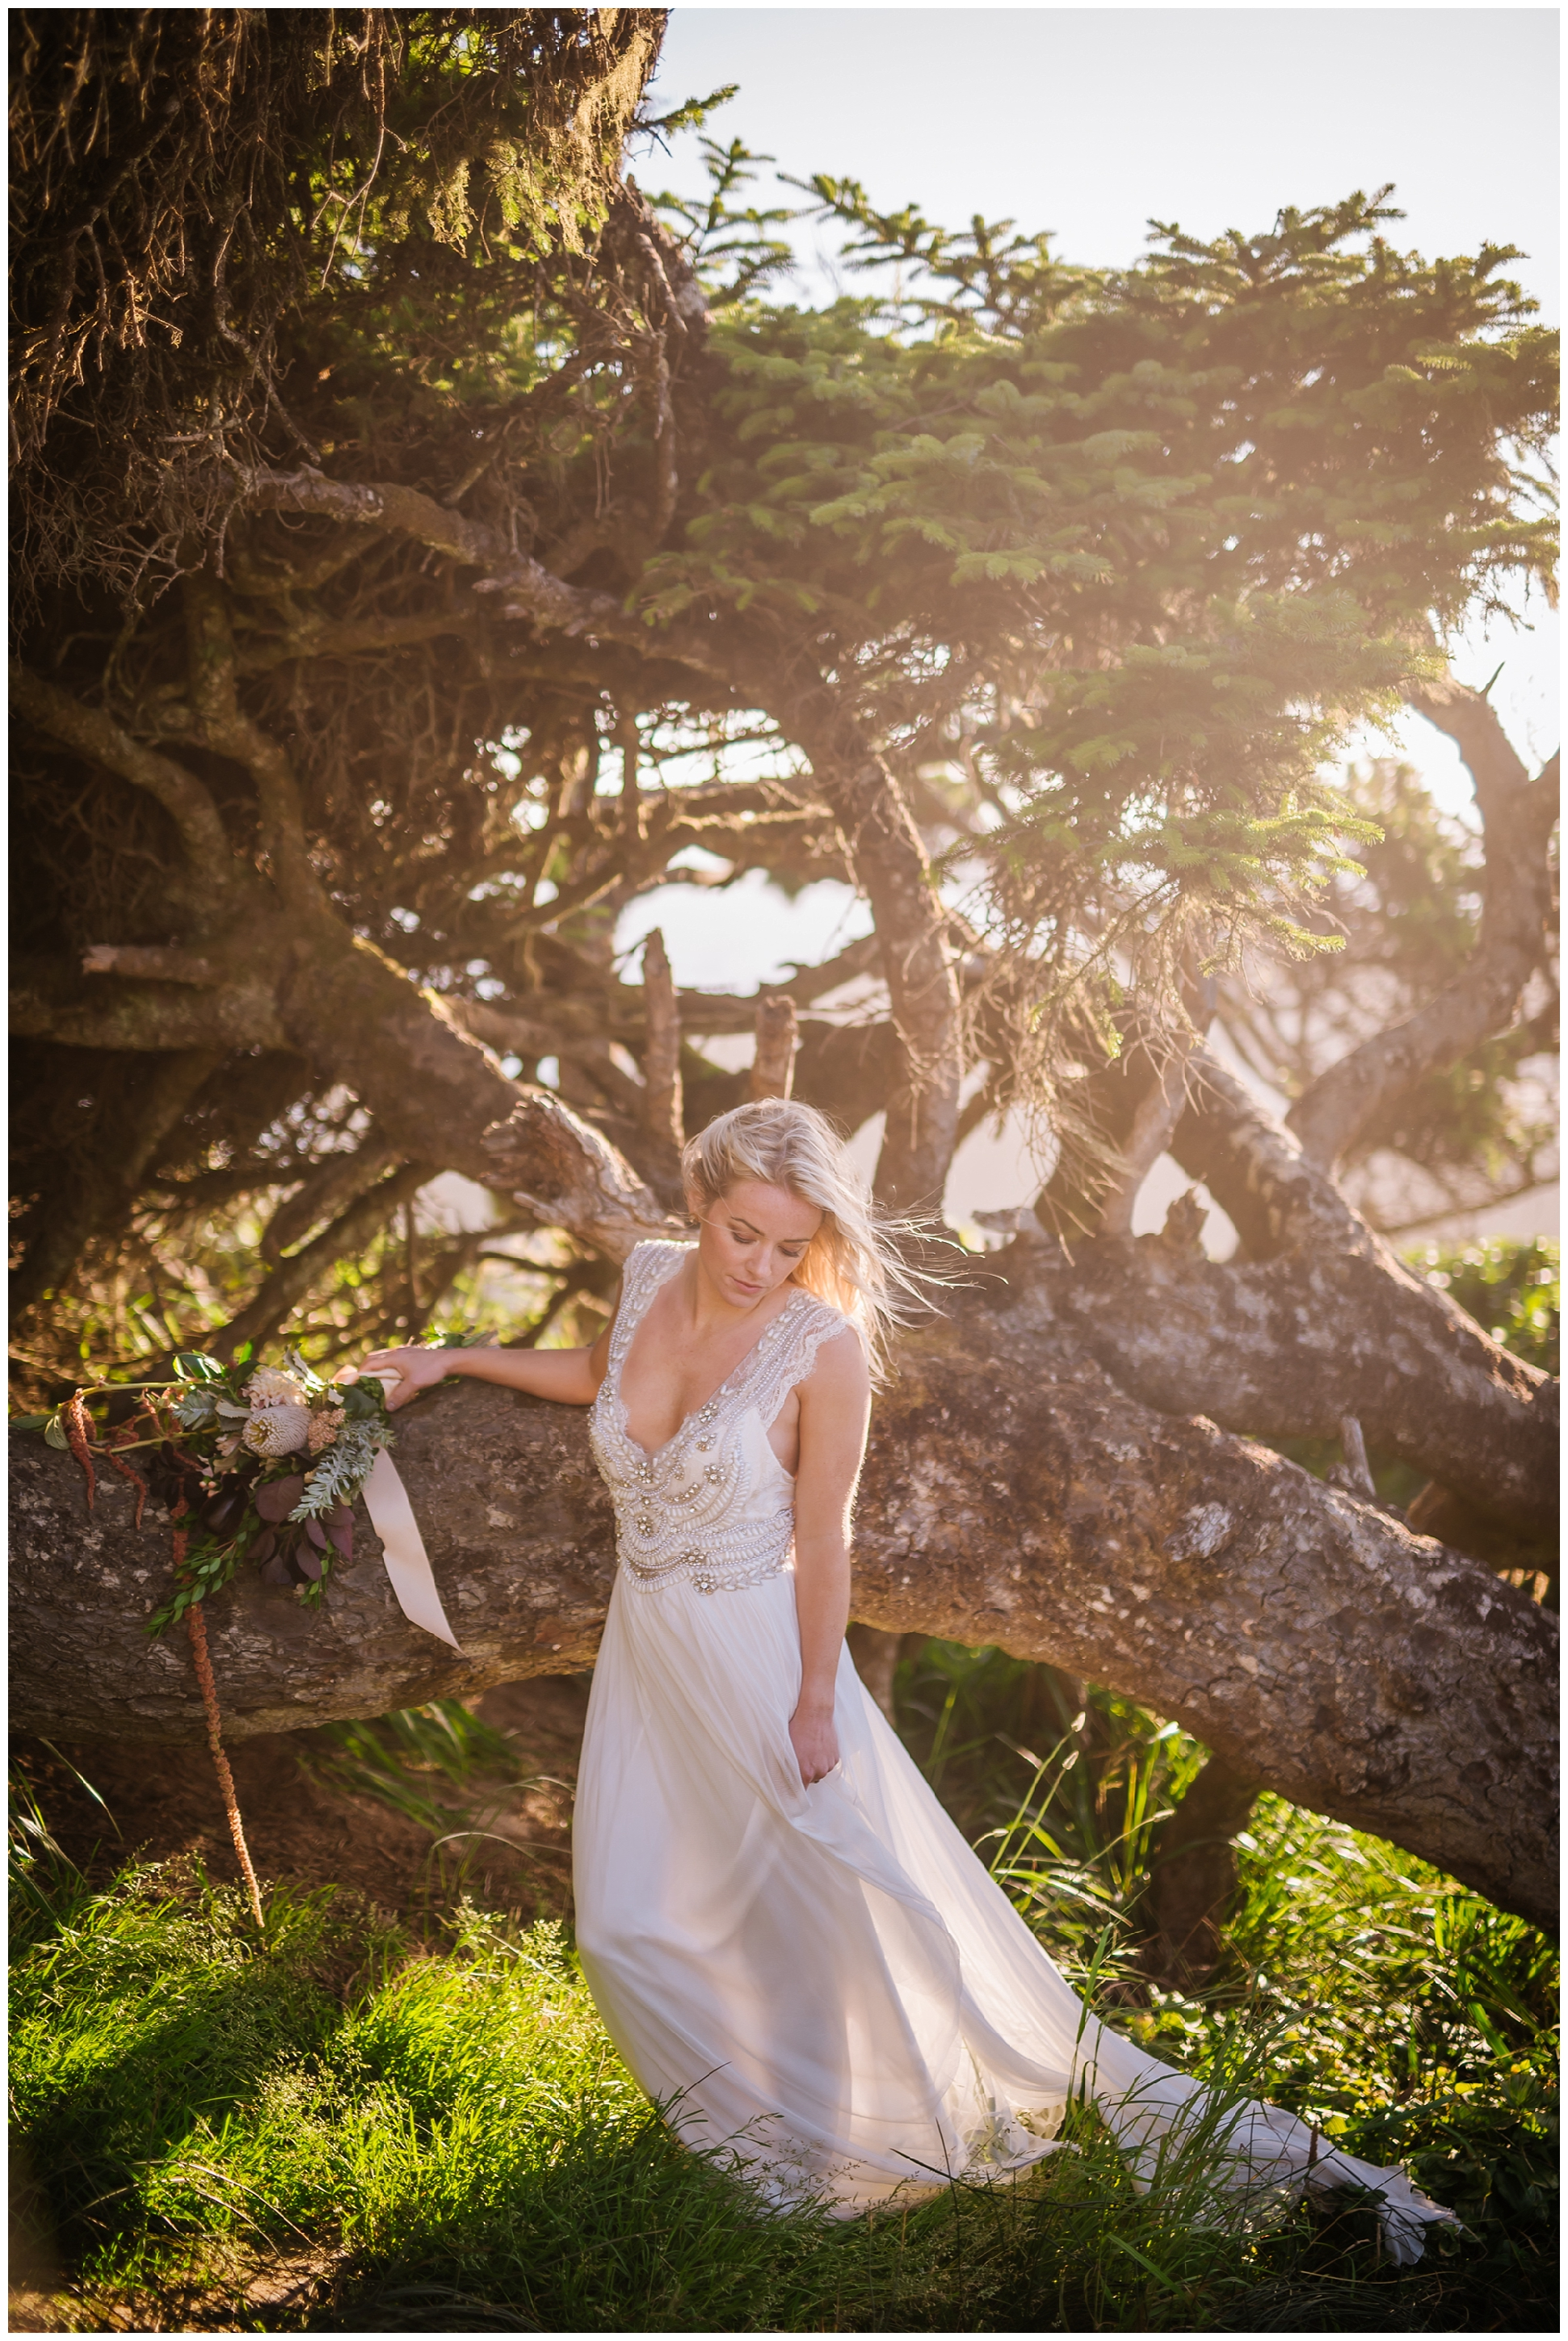 Cape-kiwanda-bridal-portrait-destination-wedding-photographer_0023.jpg